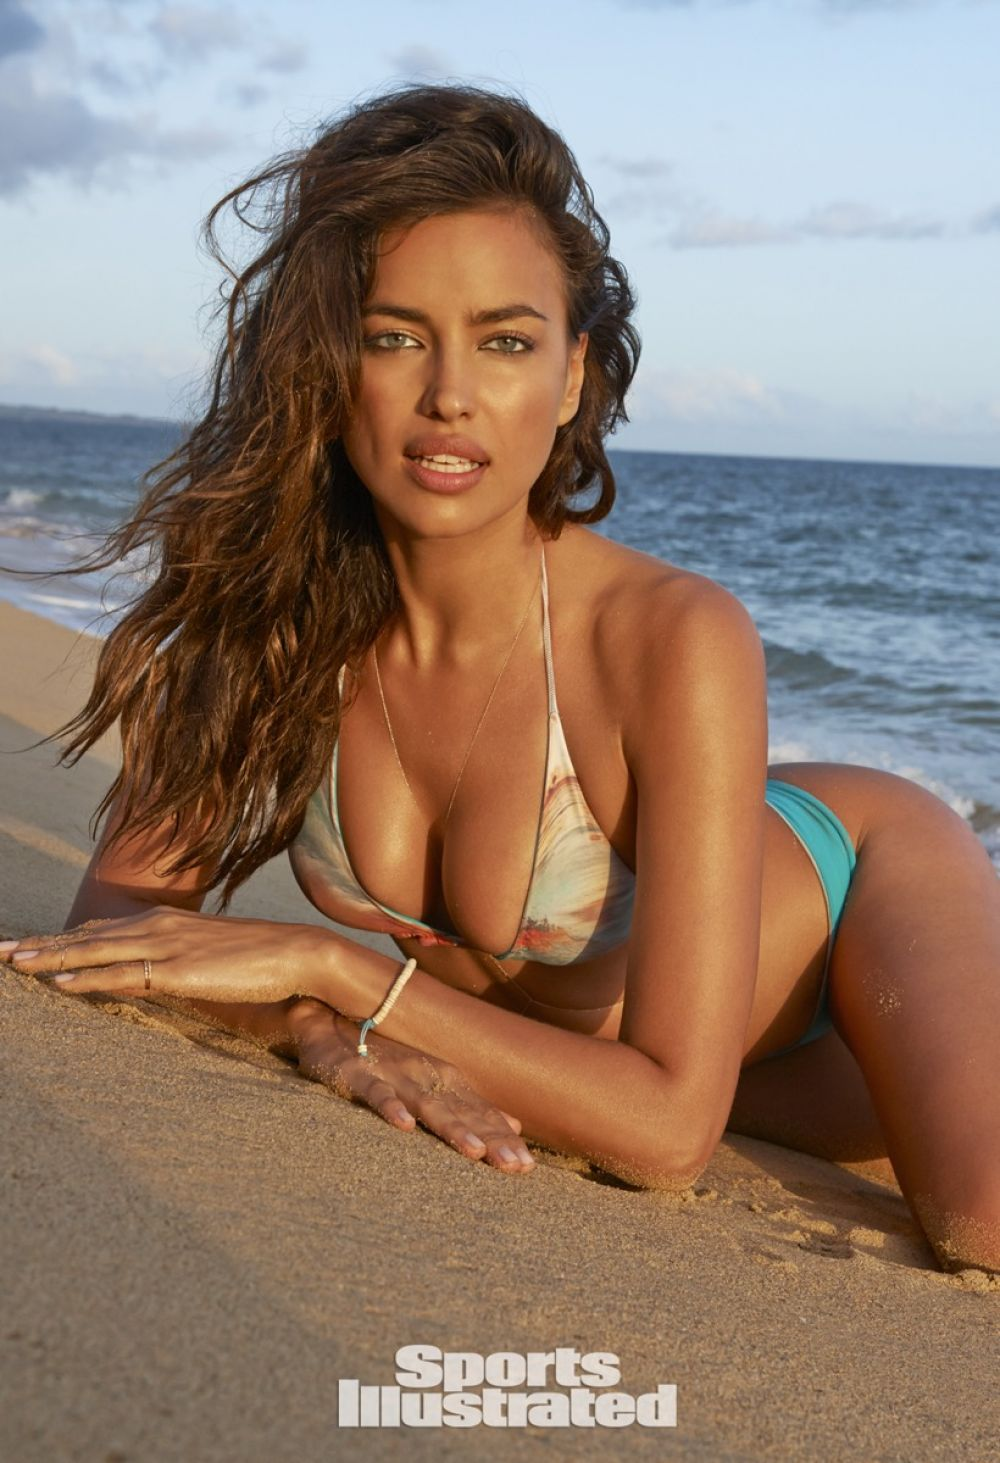 IRINA SHAYK in Sports Illustrated Swimsuit 2015 Issue ...